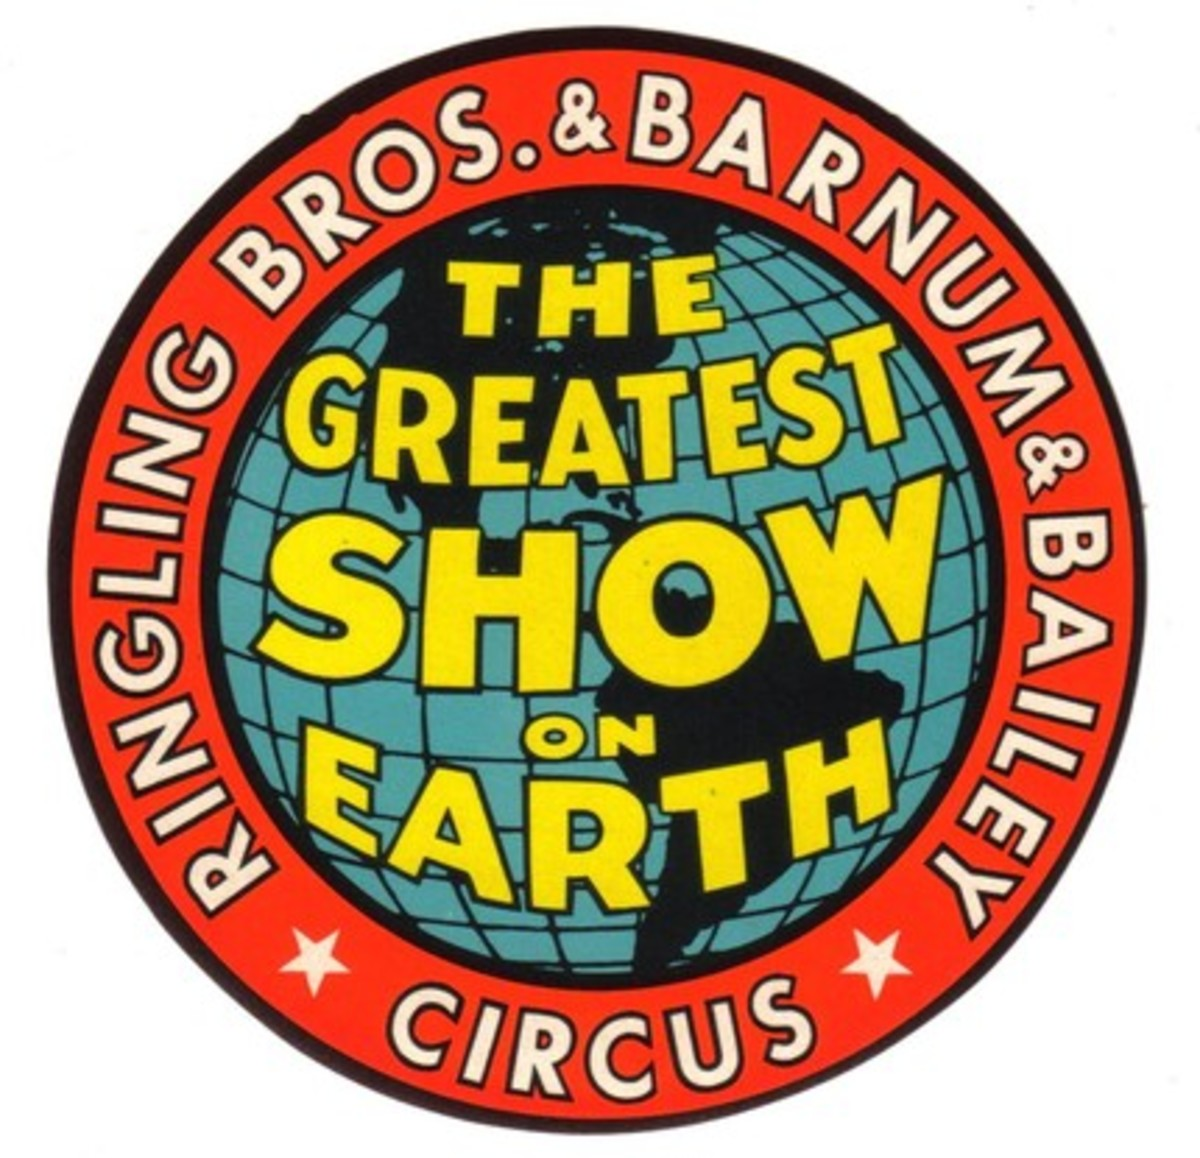 The Demise of Ringling Bros. and Barnum & Bailey